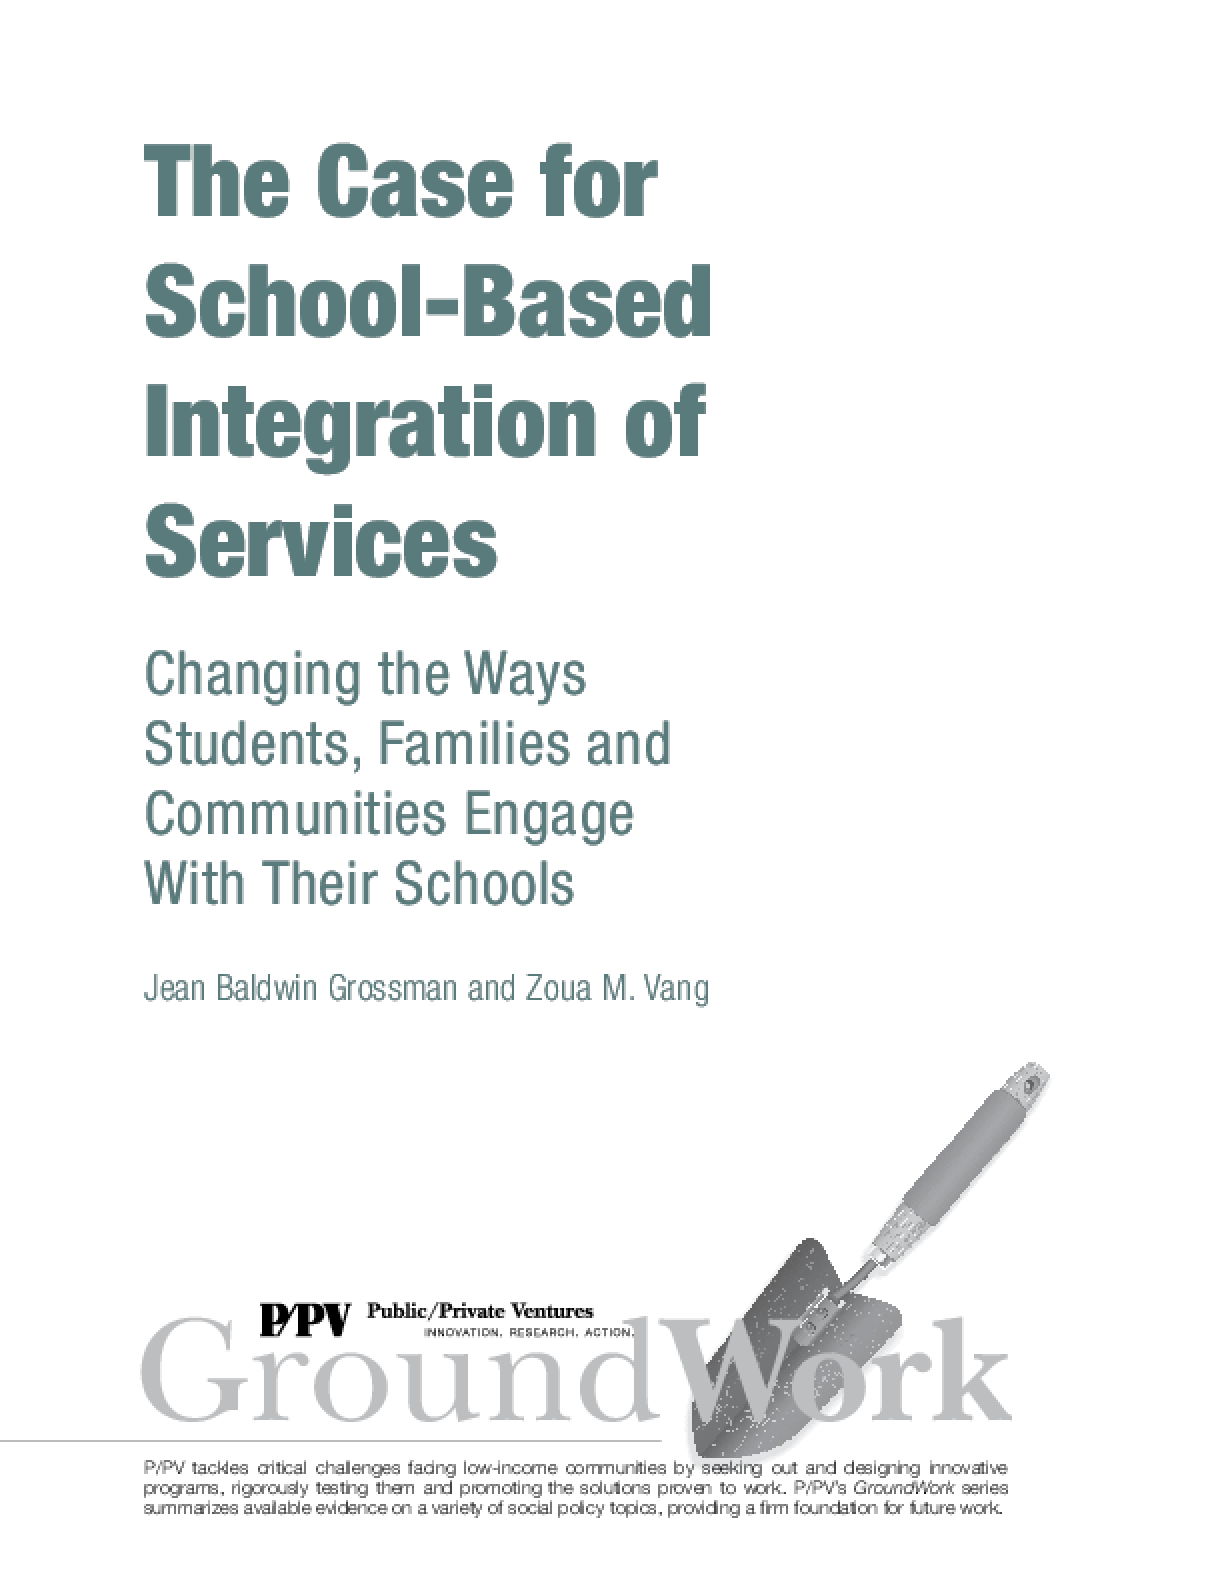 Case for School-Based Integration of Services: Changing the Ways Students, Families and Communities Engage with their Schools, The